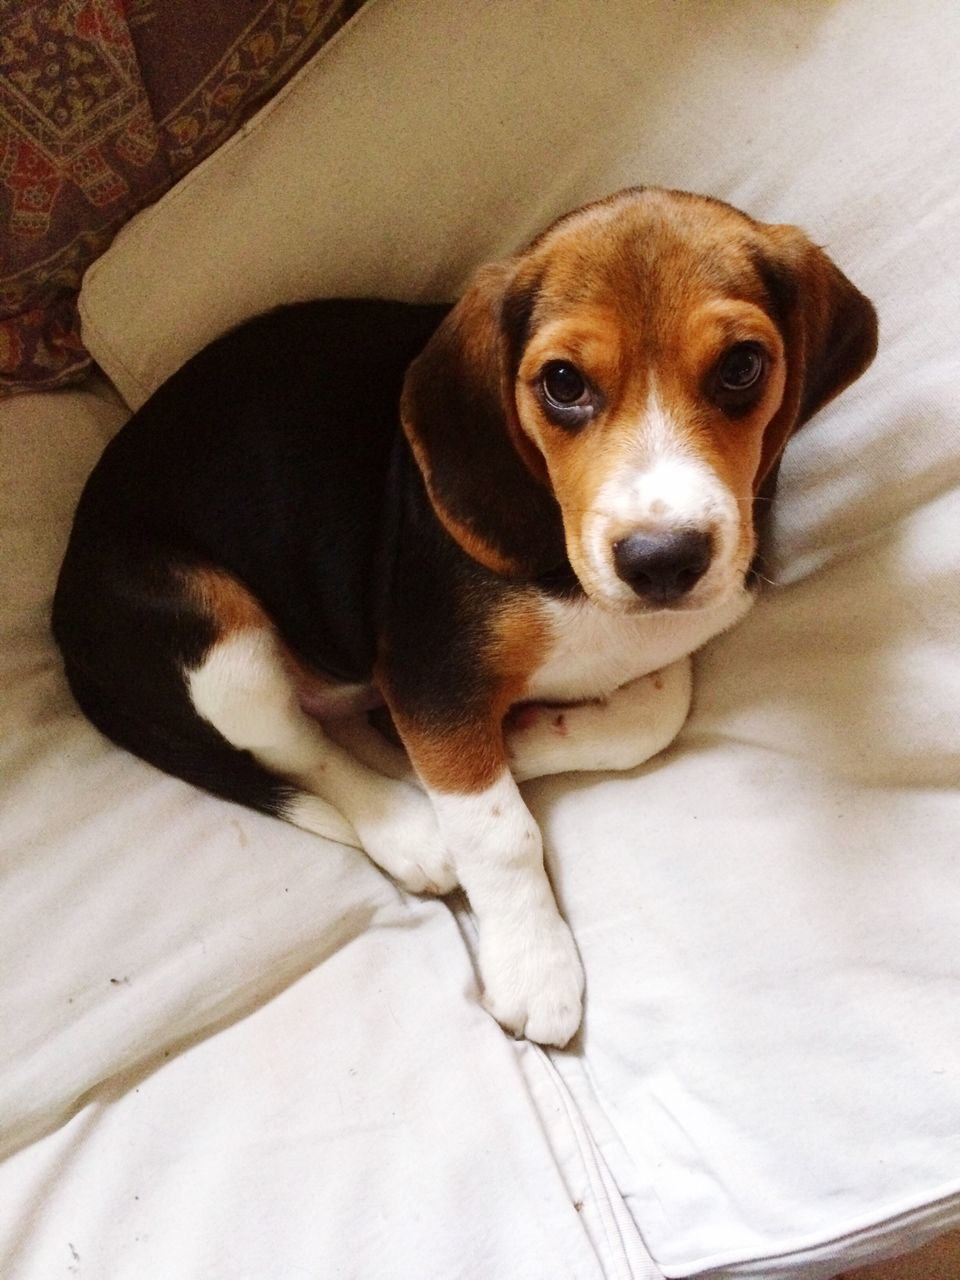 dog, pets, mammal, puppy, one animal, looking at camera, indoors, domestic animals, relaxation, portrait, cute, sitting, beagle, animal themes, no people